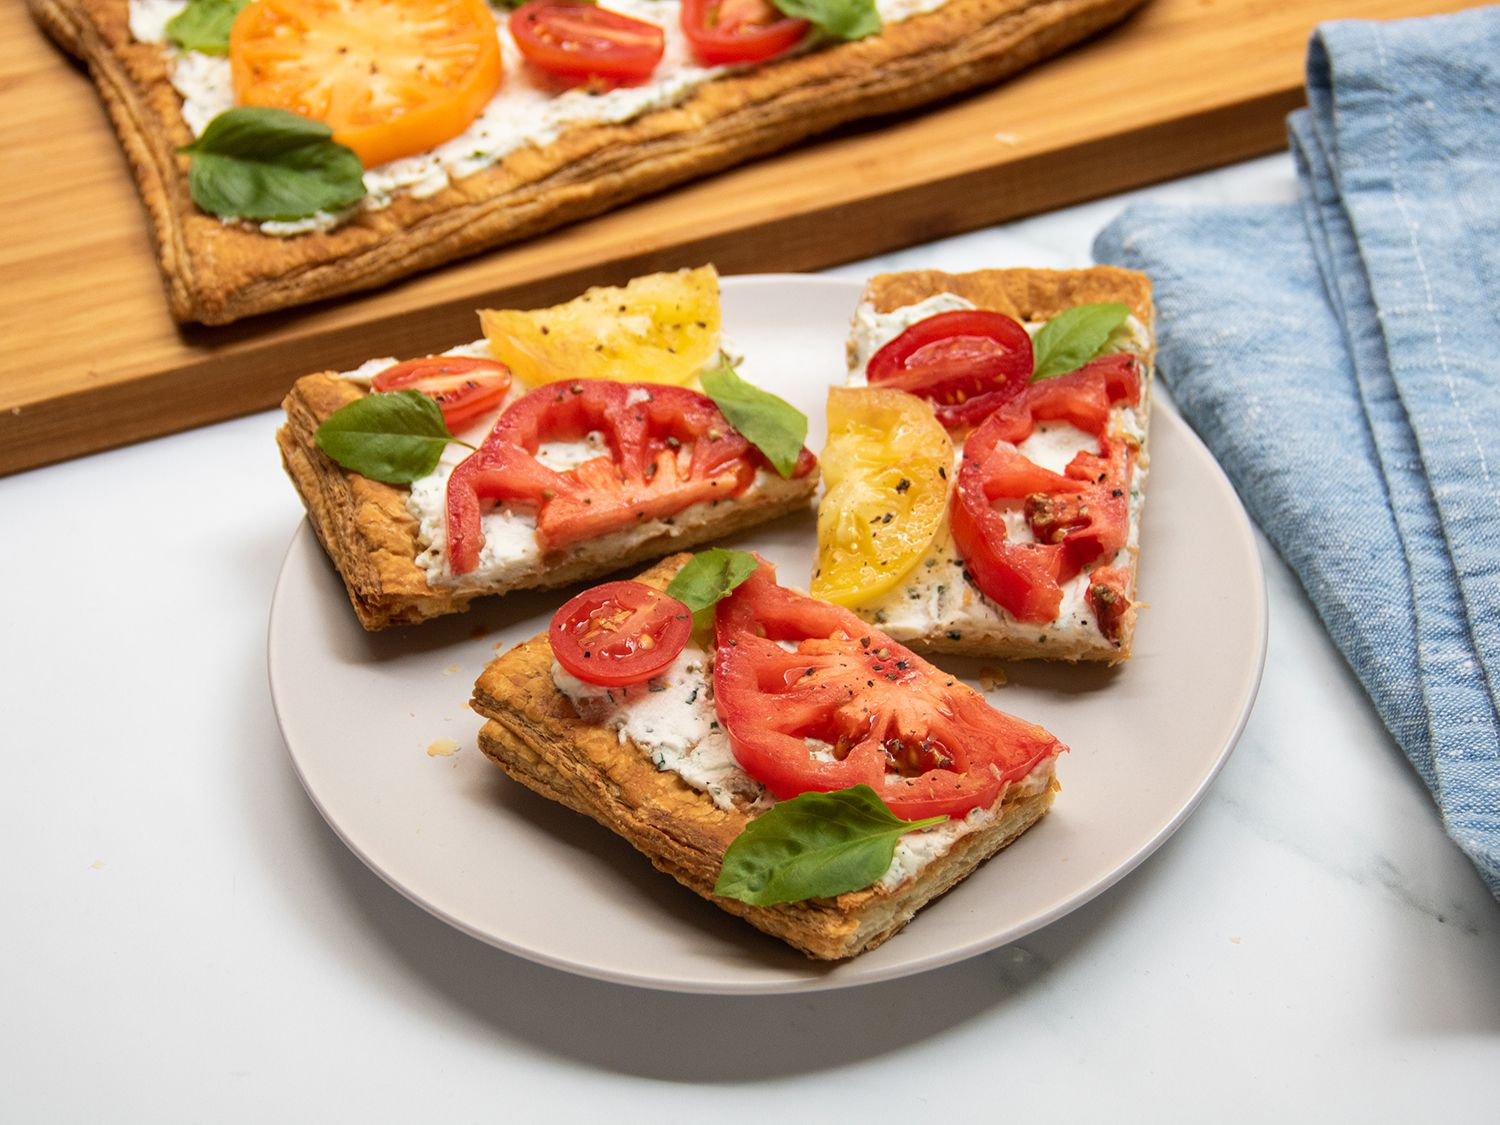 Slices of tomato tart on a plate, set in front of a cutting board with the rest of the tomato tart